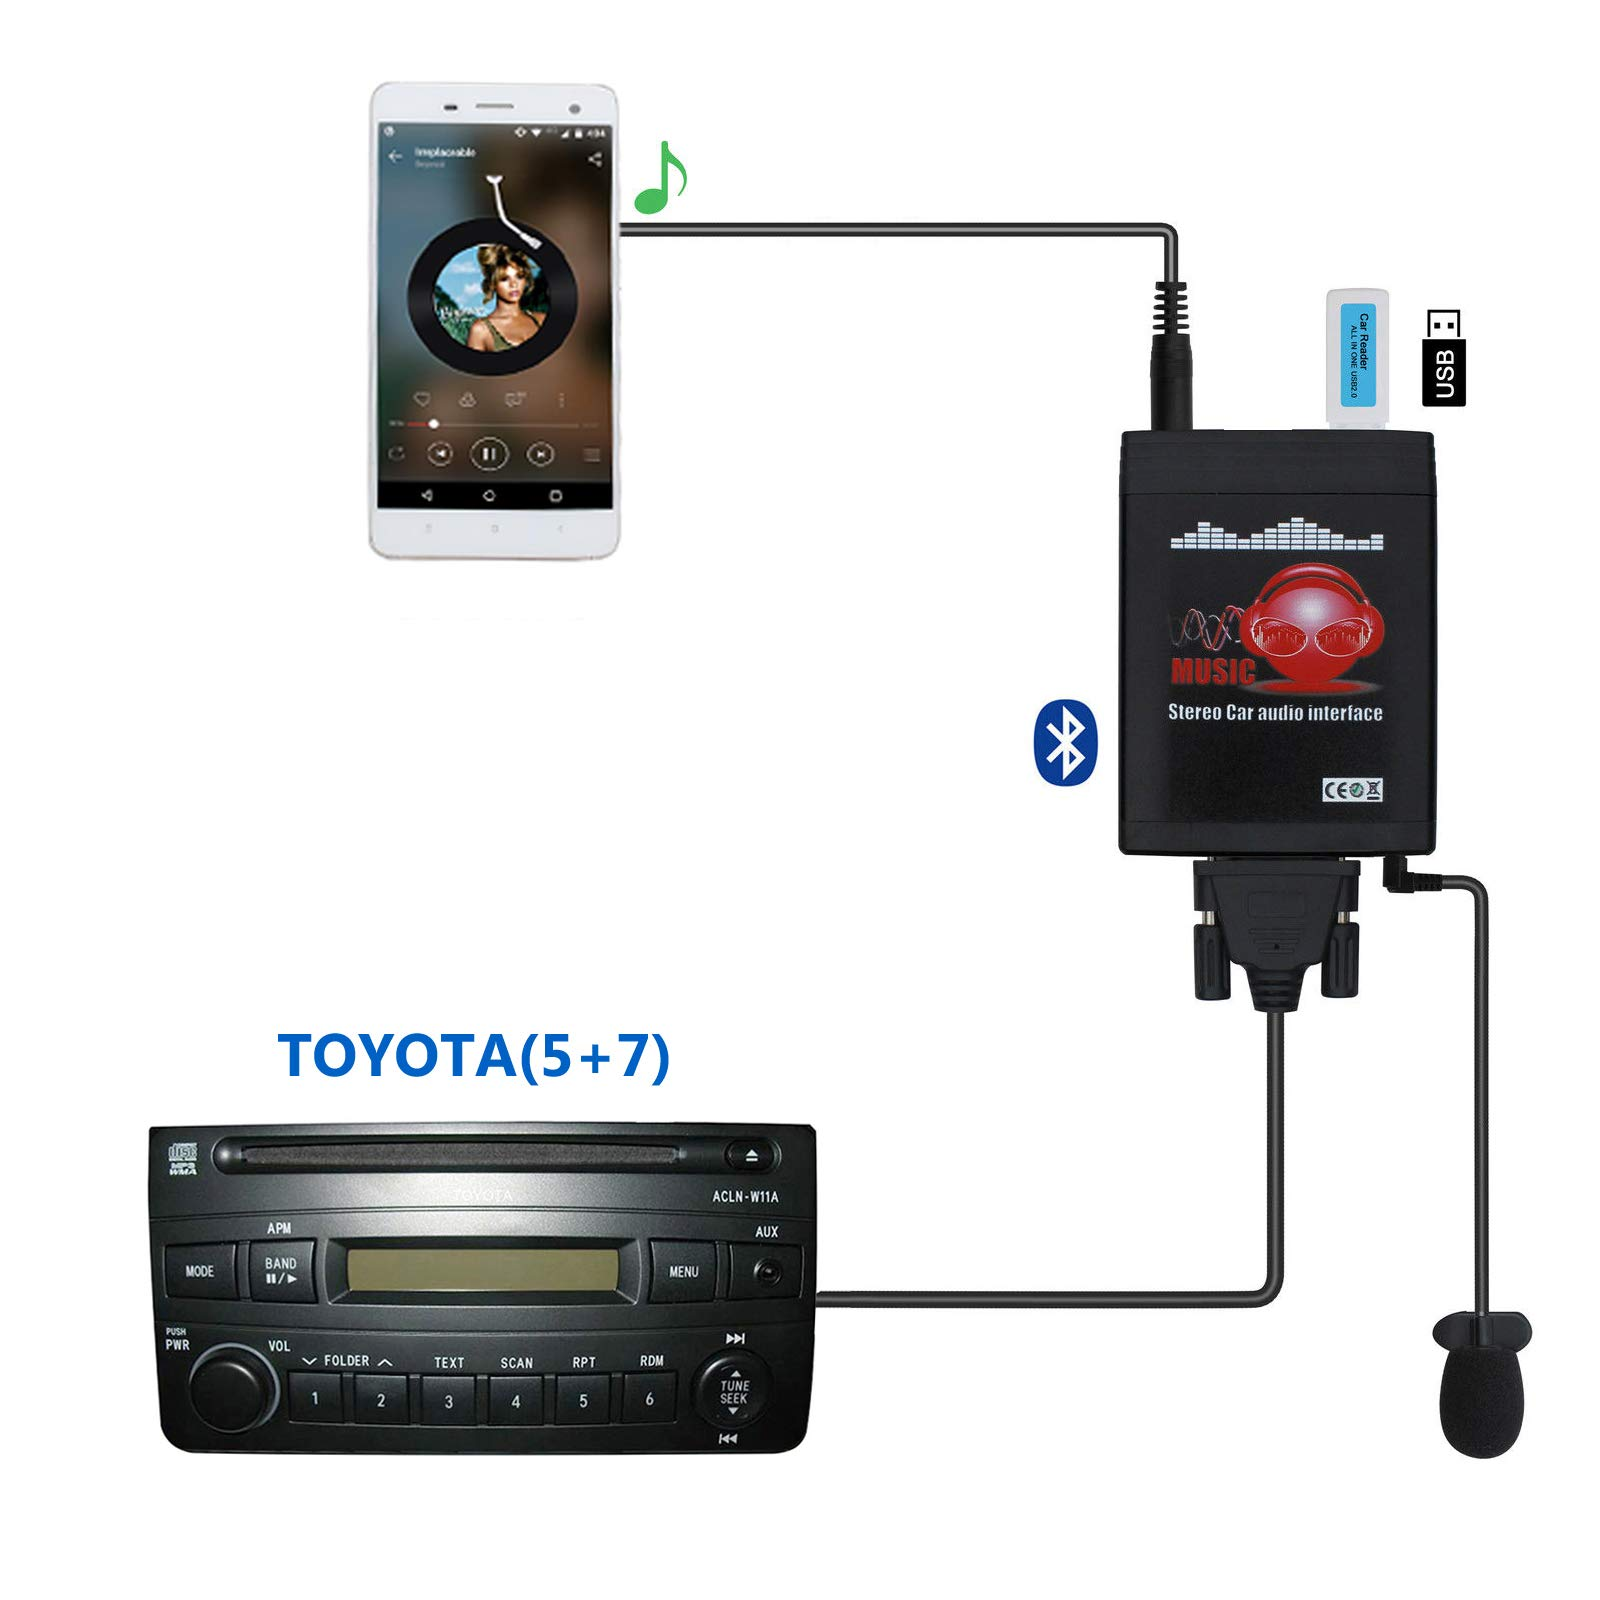 Bluetooth Car Kit, Yomikoo Car MP3 USB/AUX 3.5mm Stereo Wireless Music Receiver Wireless Hands Free Auto Bluetooth Adapter for Toyota (5+7) Pin Camry Corolla Highlander RAV4 Yaris Lexus is GS LS